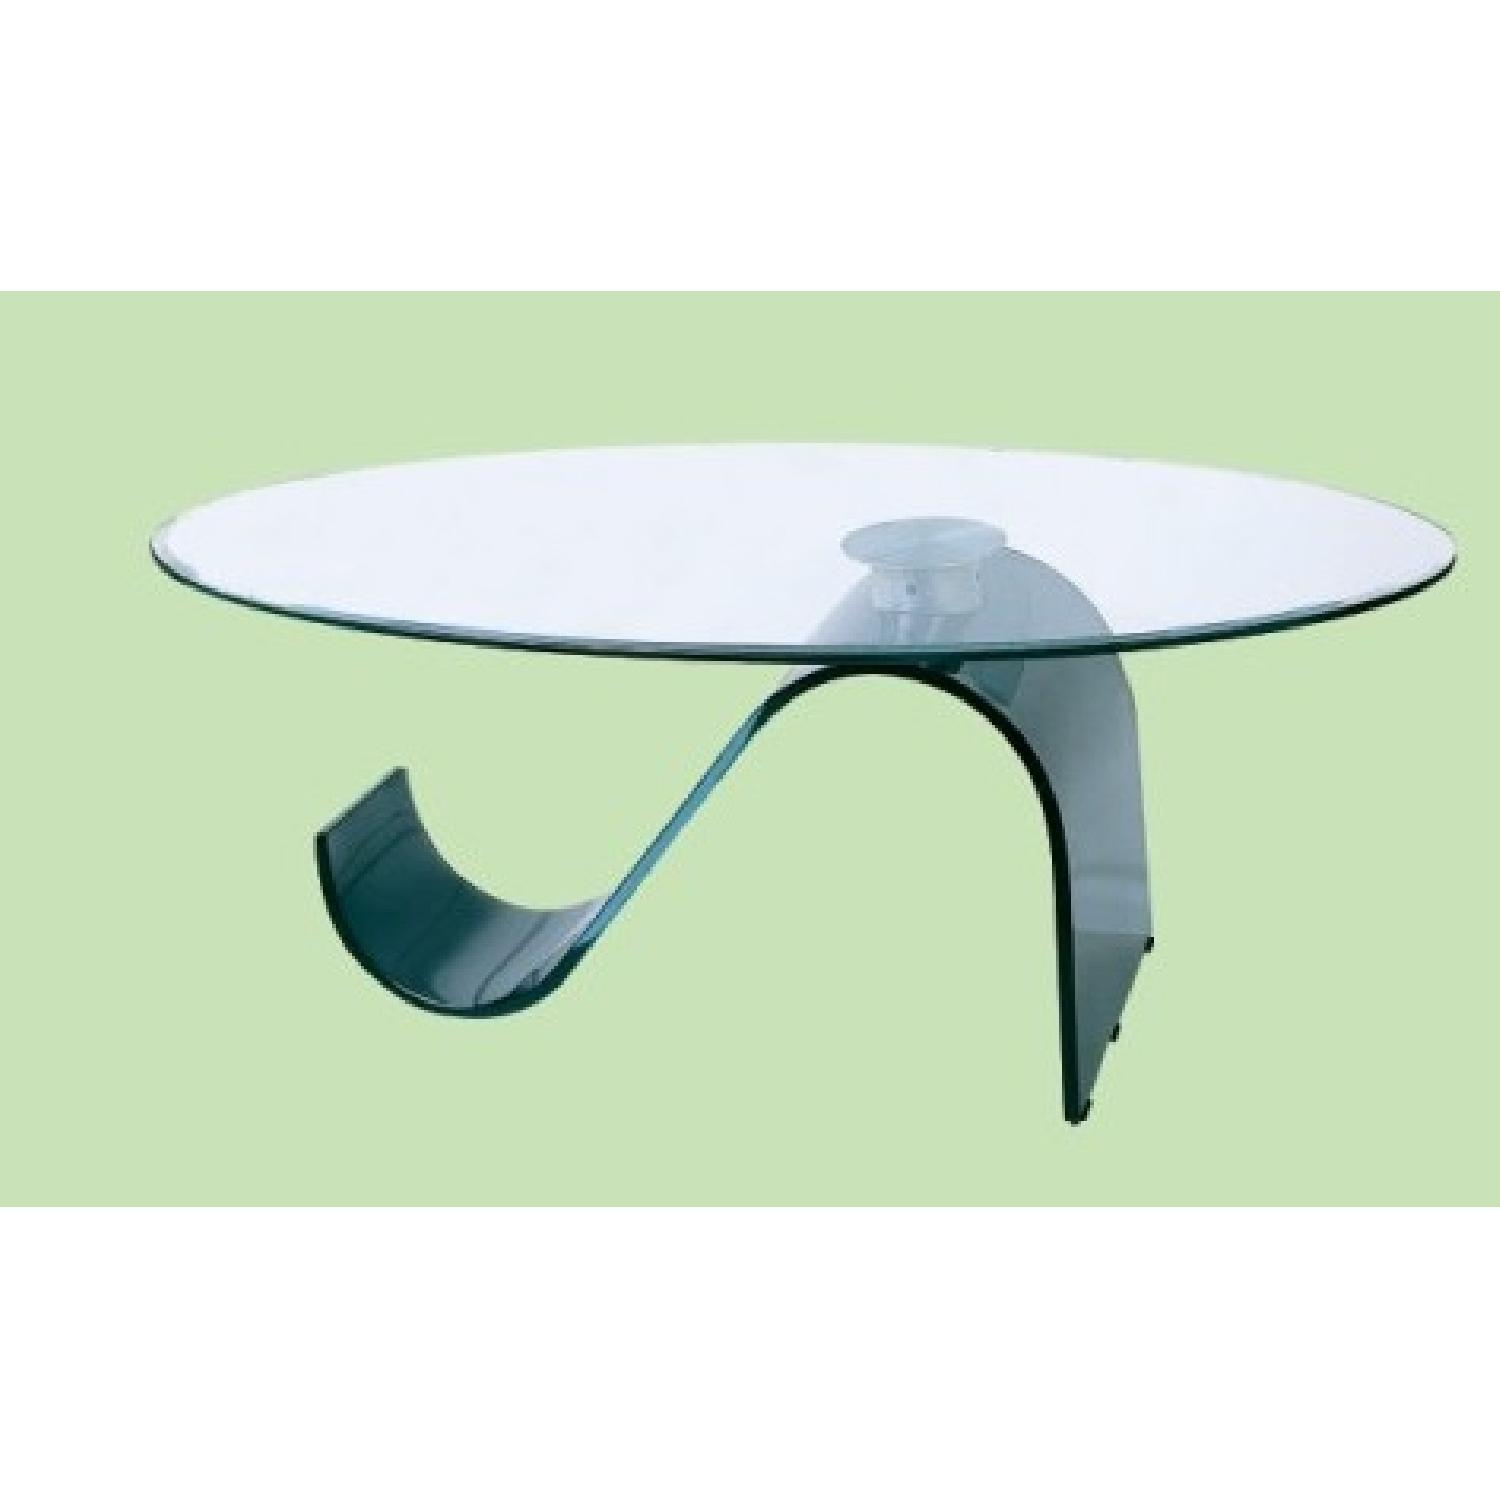 Modern Coffee Table w/ Thick Oval Tempered Glass Top &S Shap-1